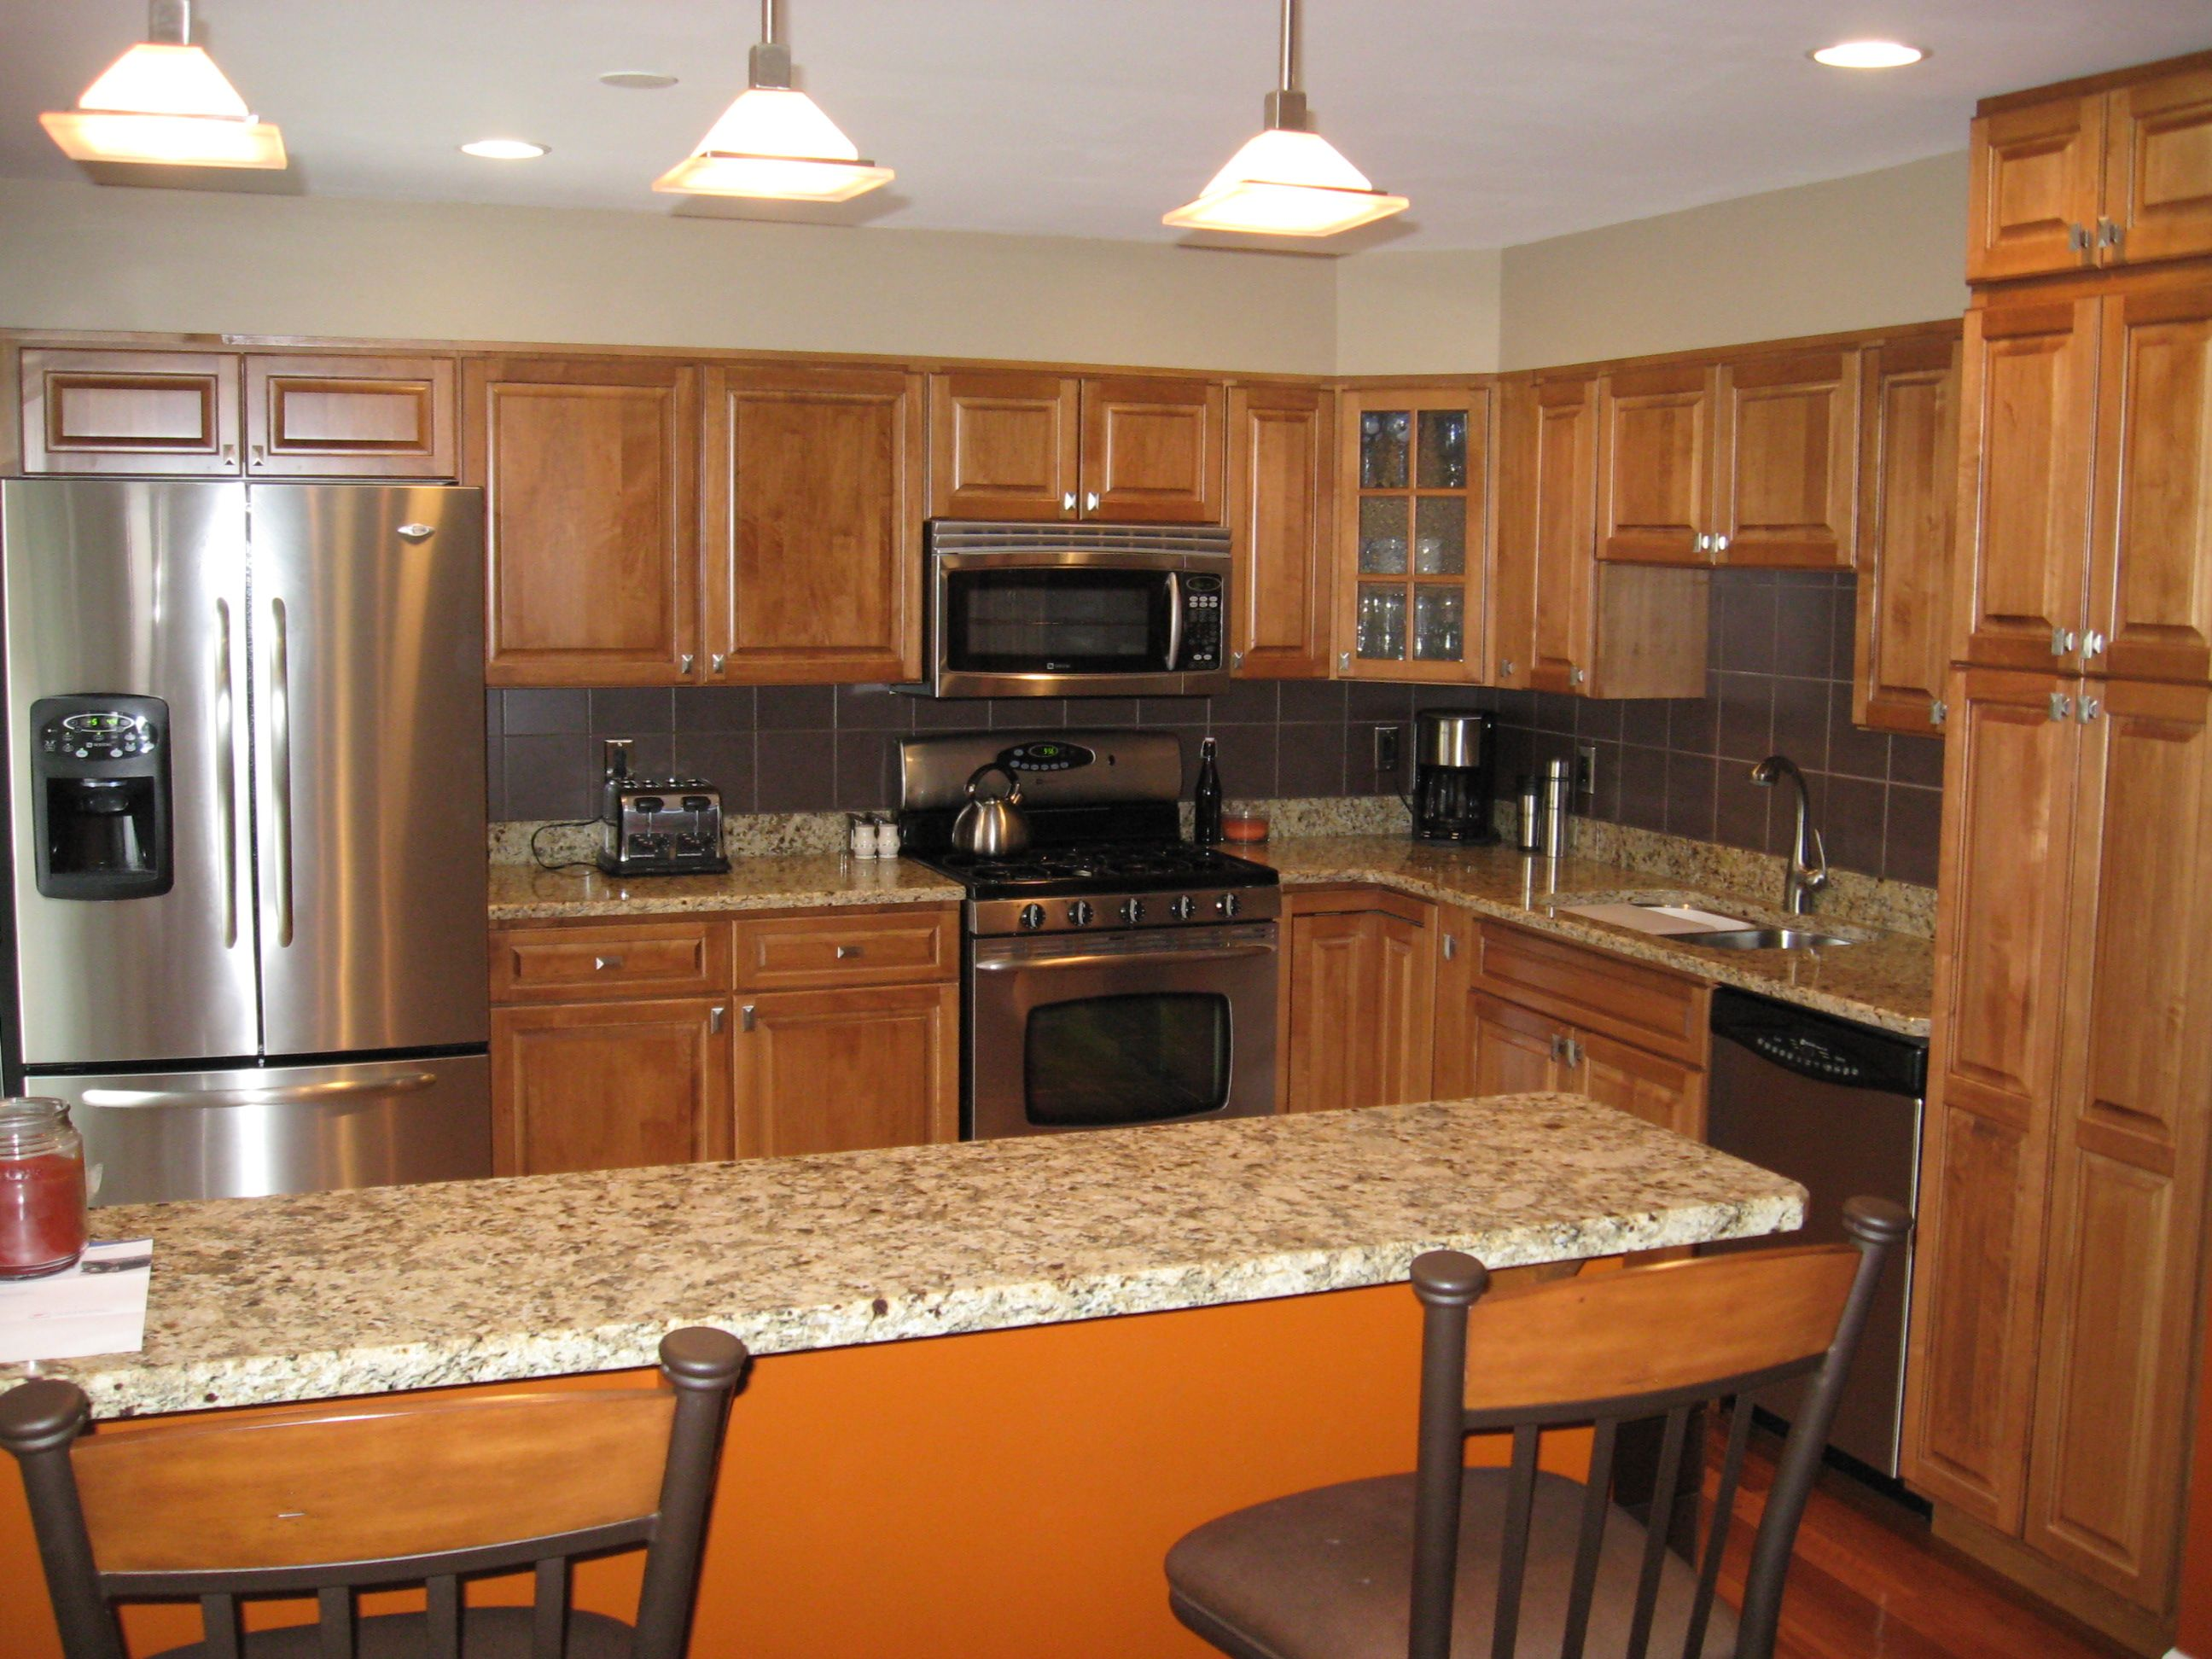 good Pictures Of Small Kitchen Remodels #6: 17 Best images about Kitchen Remodels on Pinterest | White cabinets, Small  kitchens and Cabinets